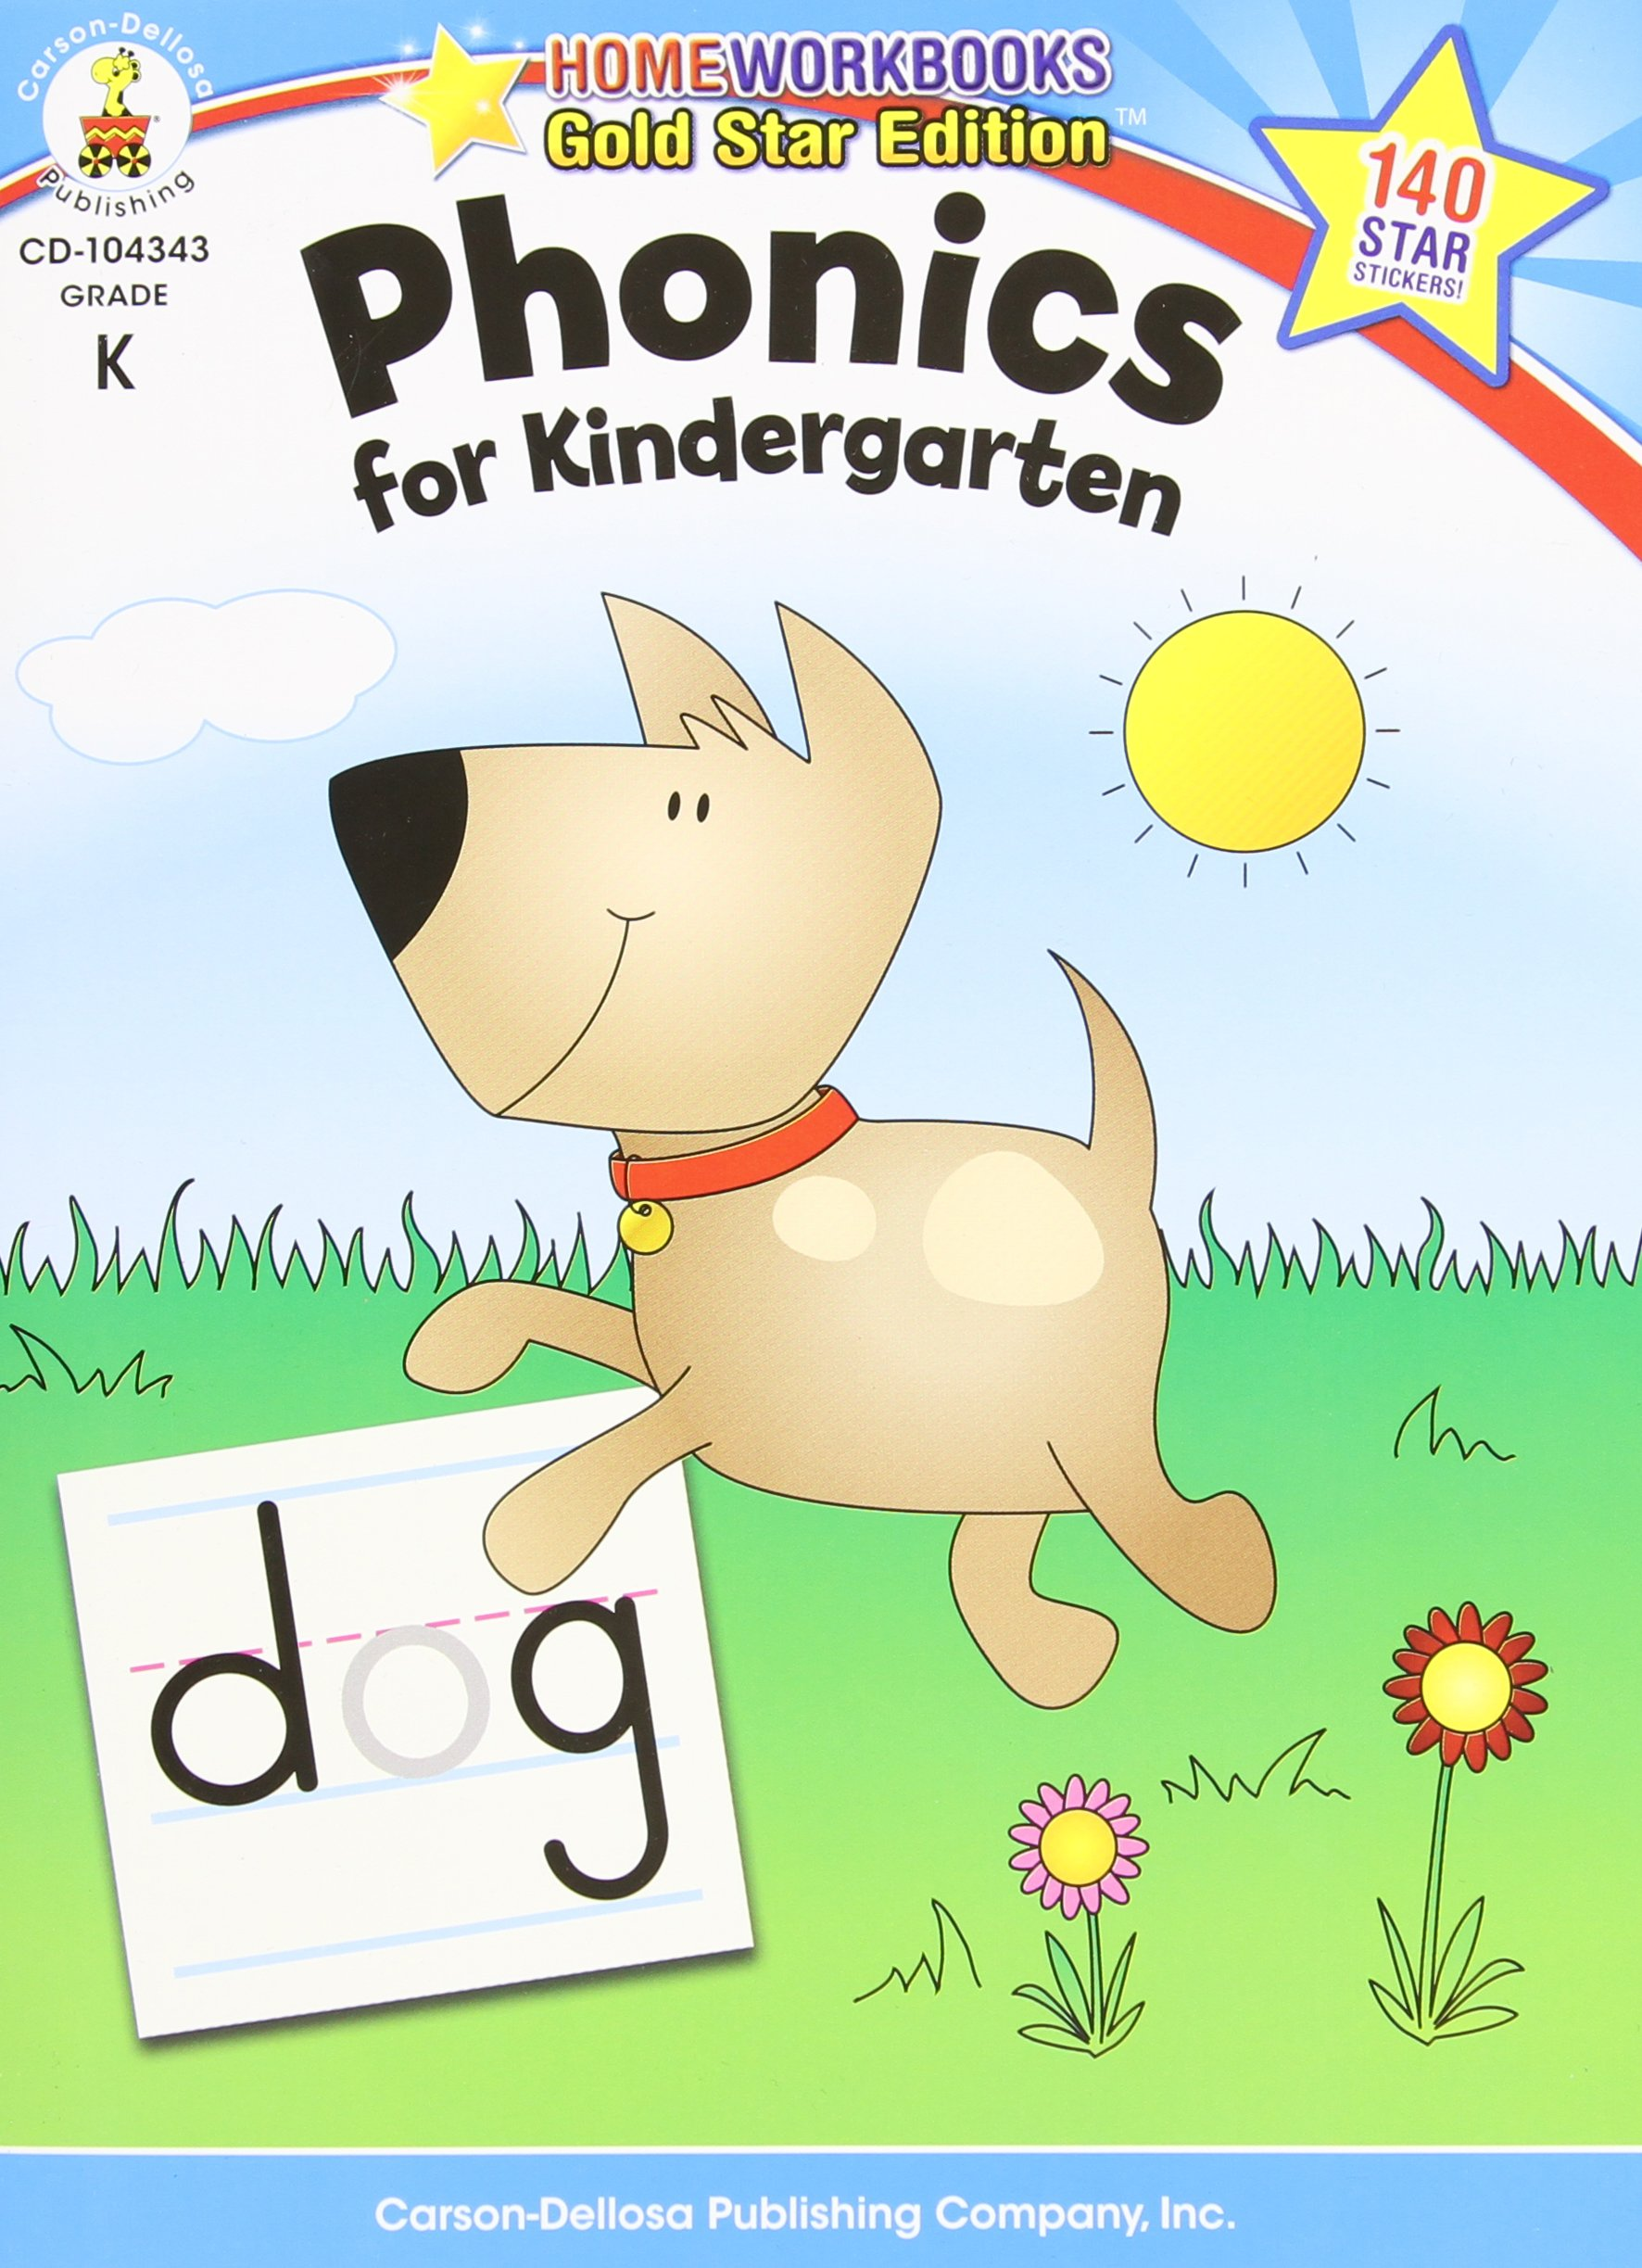 Phonics For Kindergarten Workbook Review